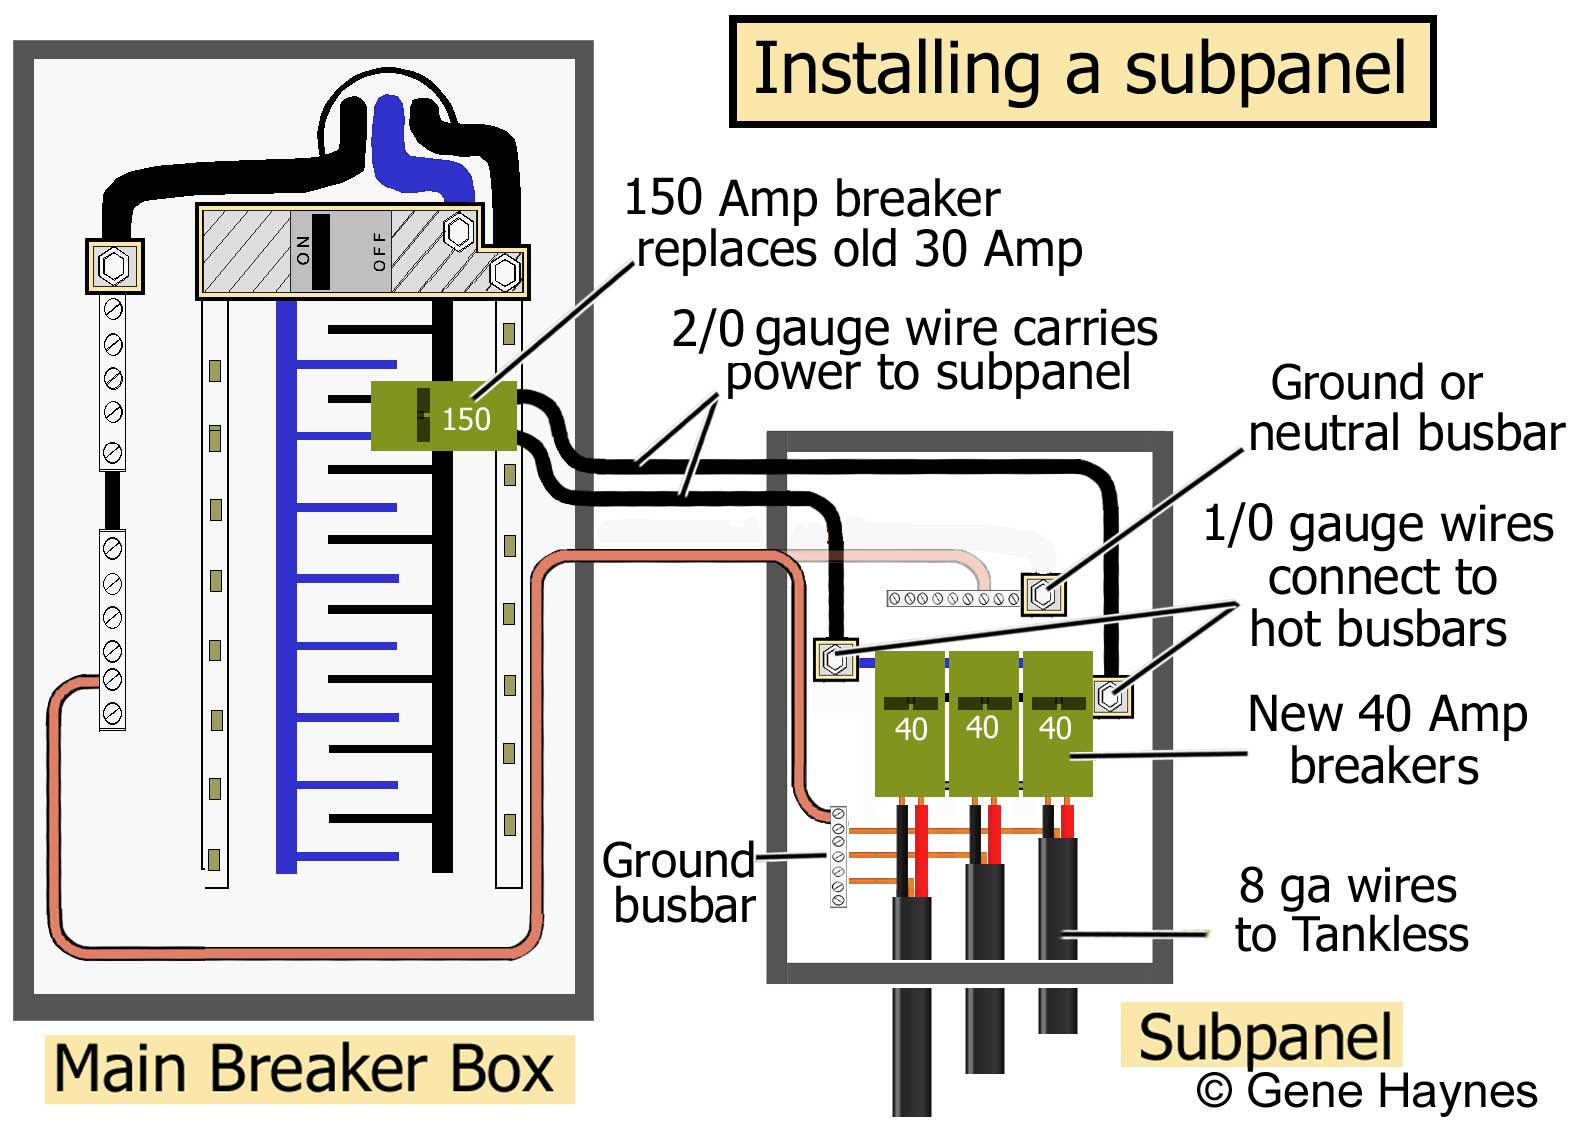 How to wire tankless electric water heater larger image of 240 volt subpanel greentooth Images